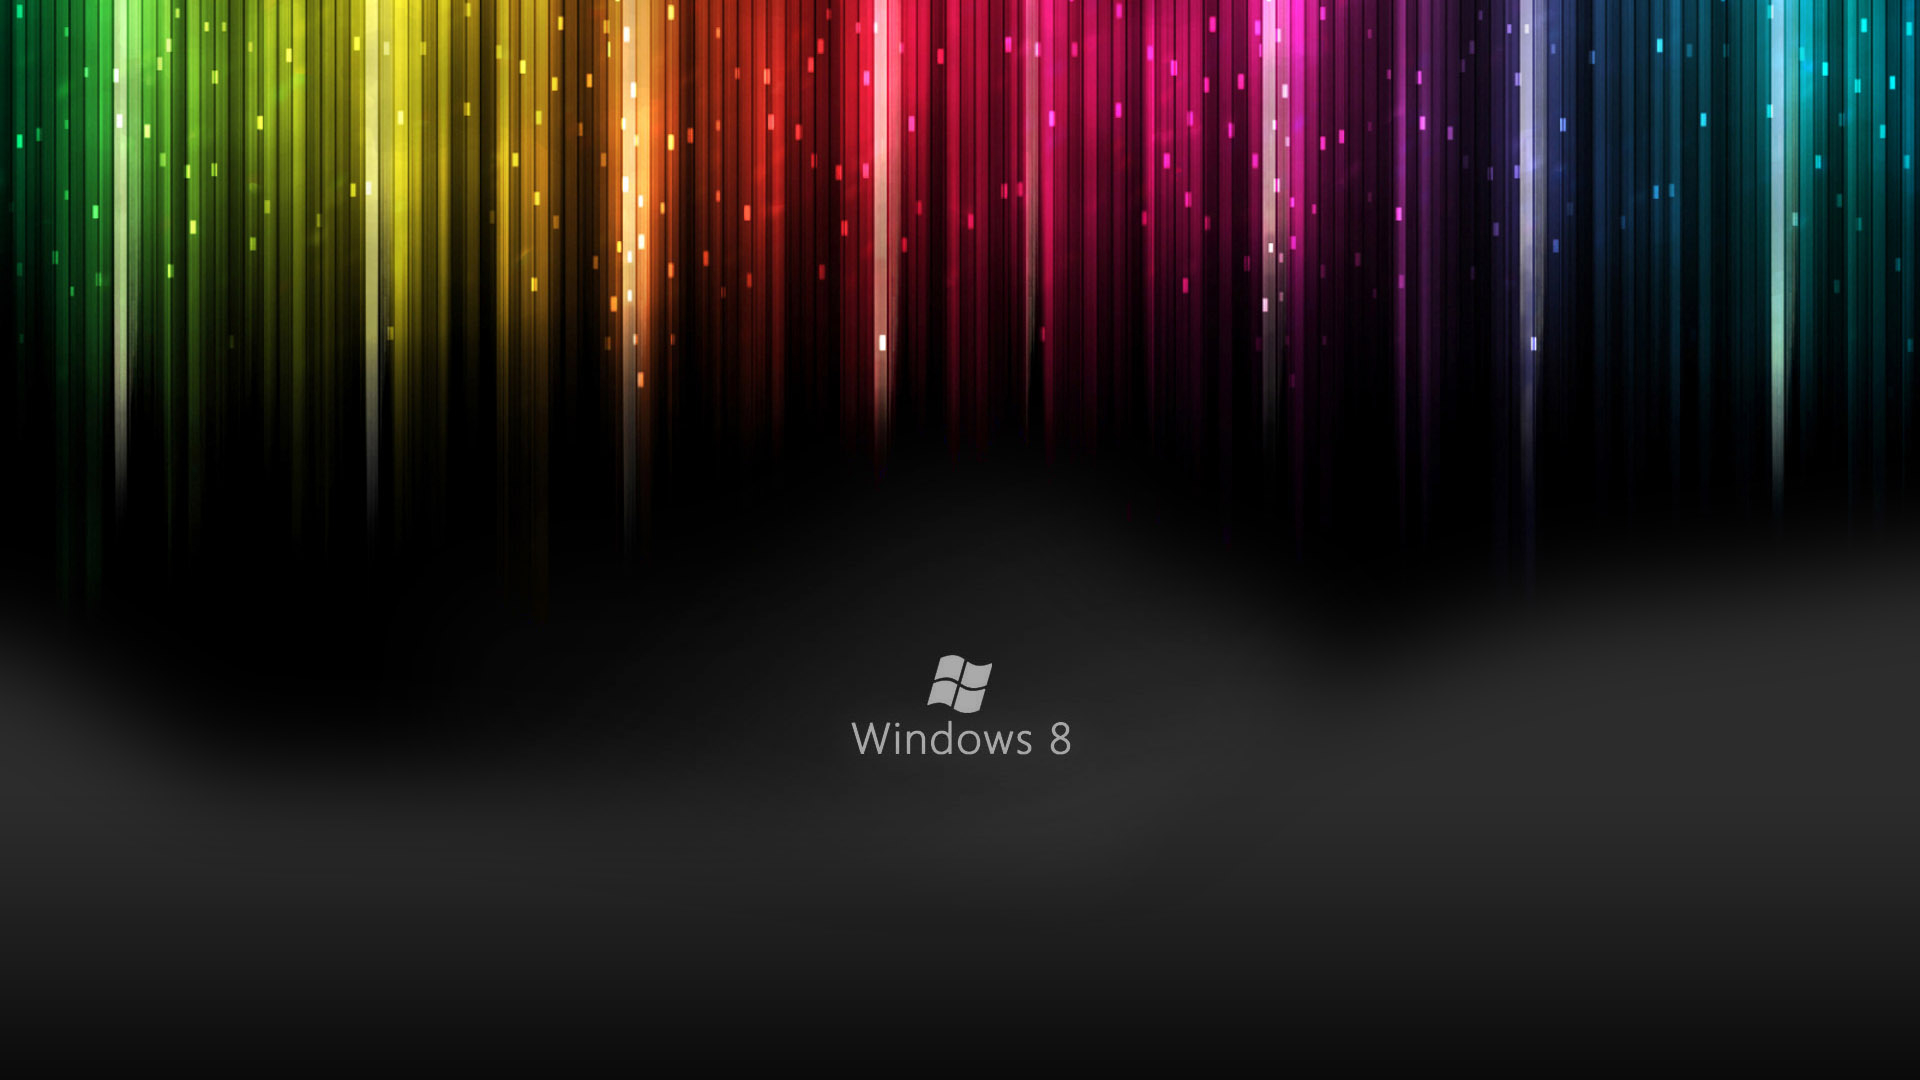 Free download Windows 8 Live Wallpapers